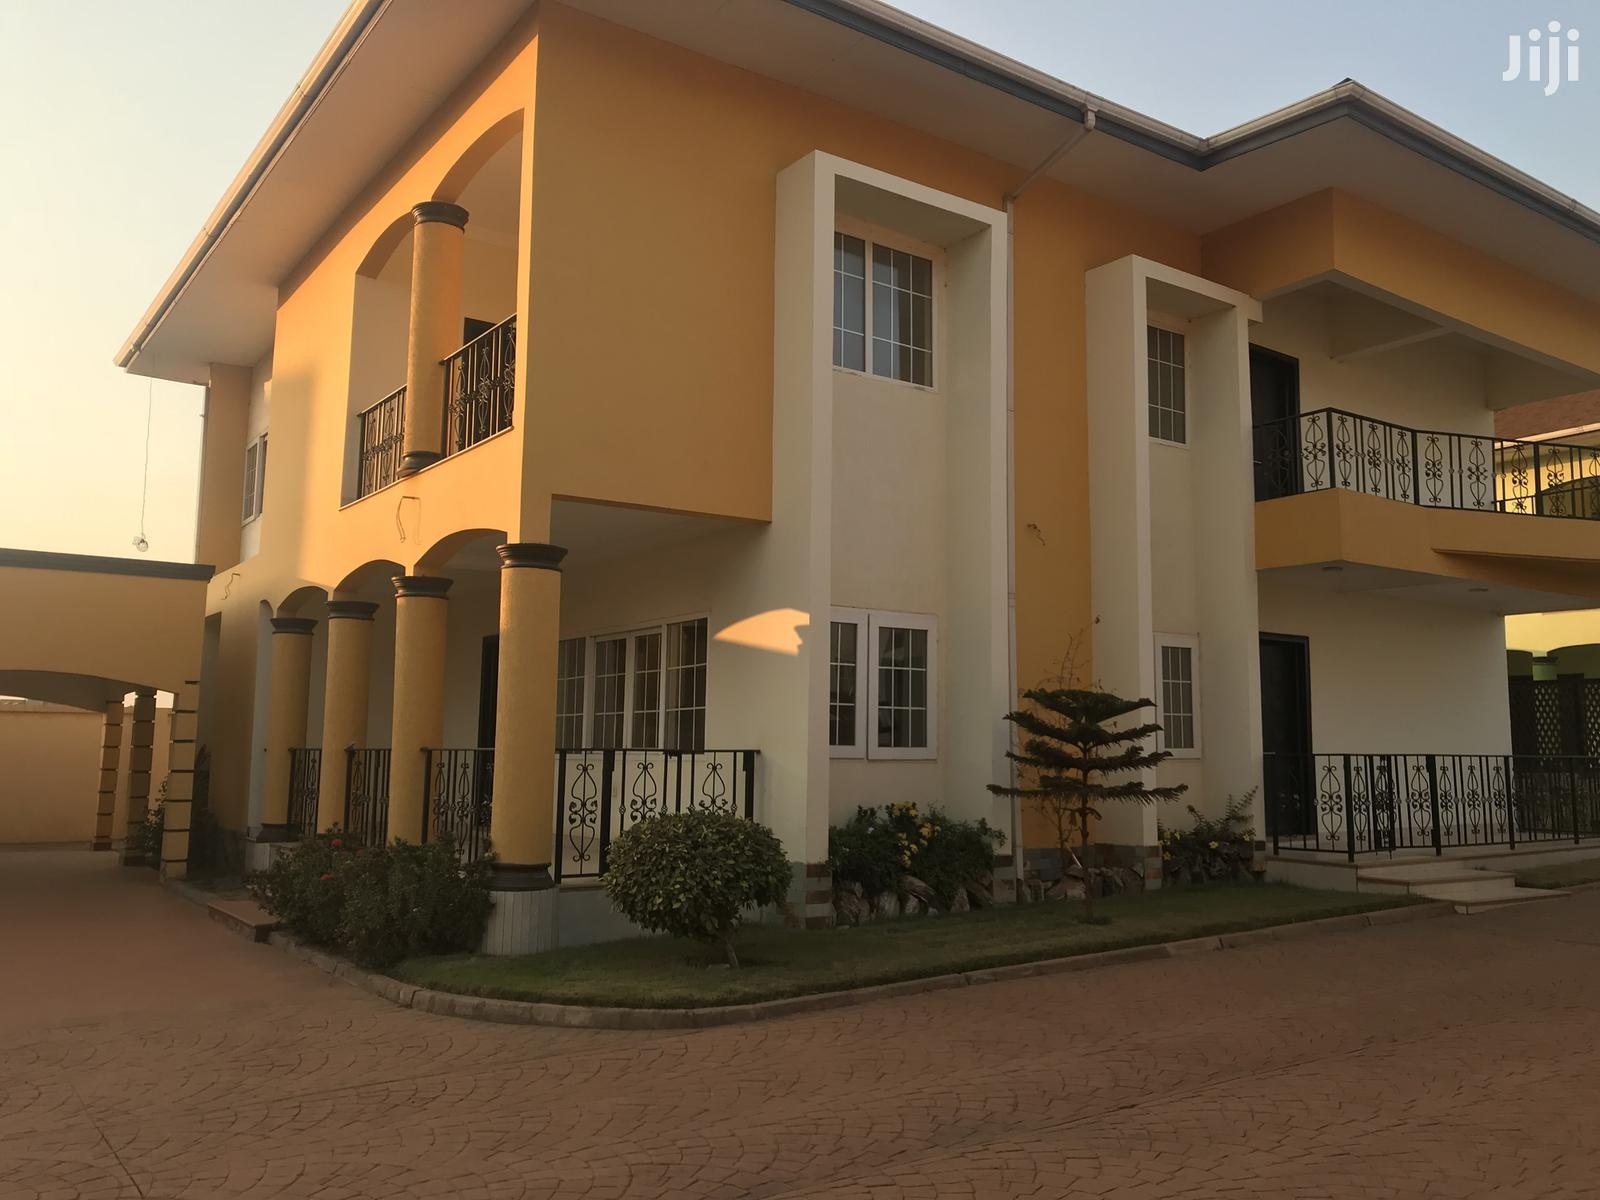 Executive 5 Bedroom House For Sale At East Legon Hills | Houses & Apartments For Sale for sale in East Legon, Greater Accra, Ghana